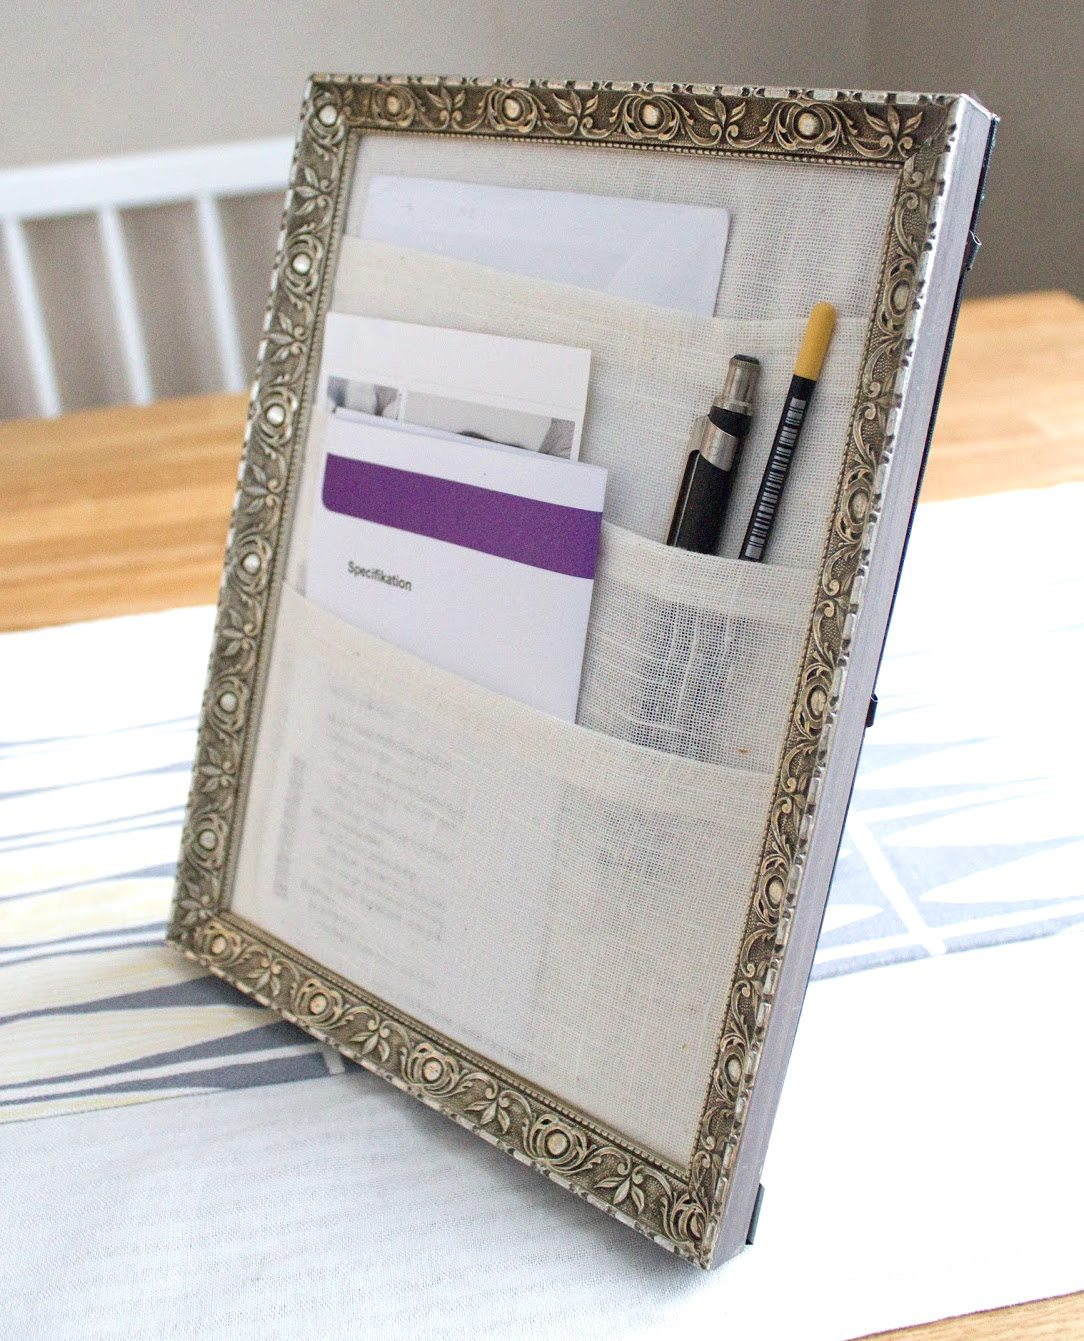 Repurpose old picture frames - table organizer